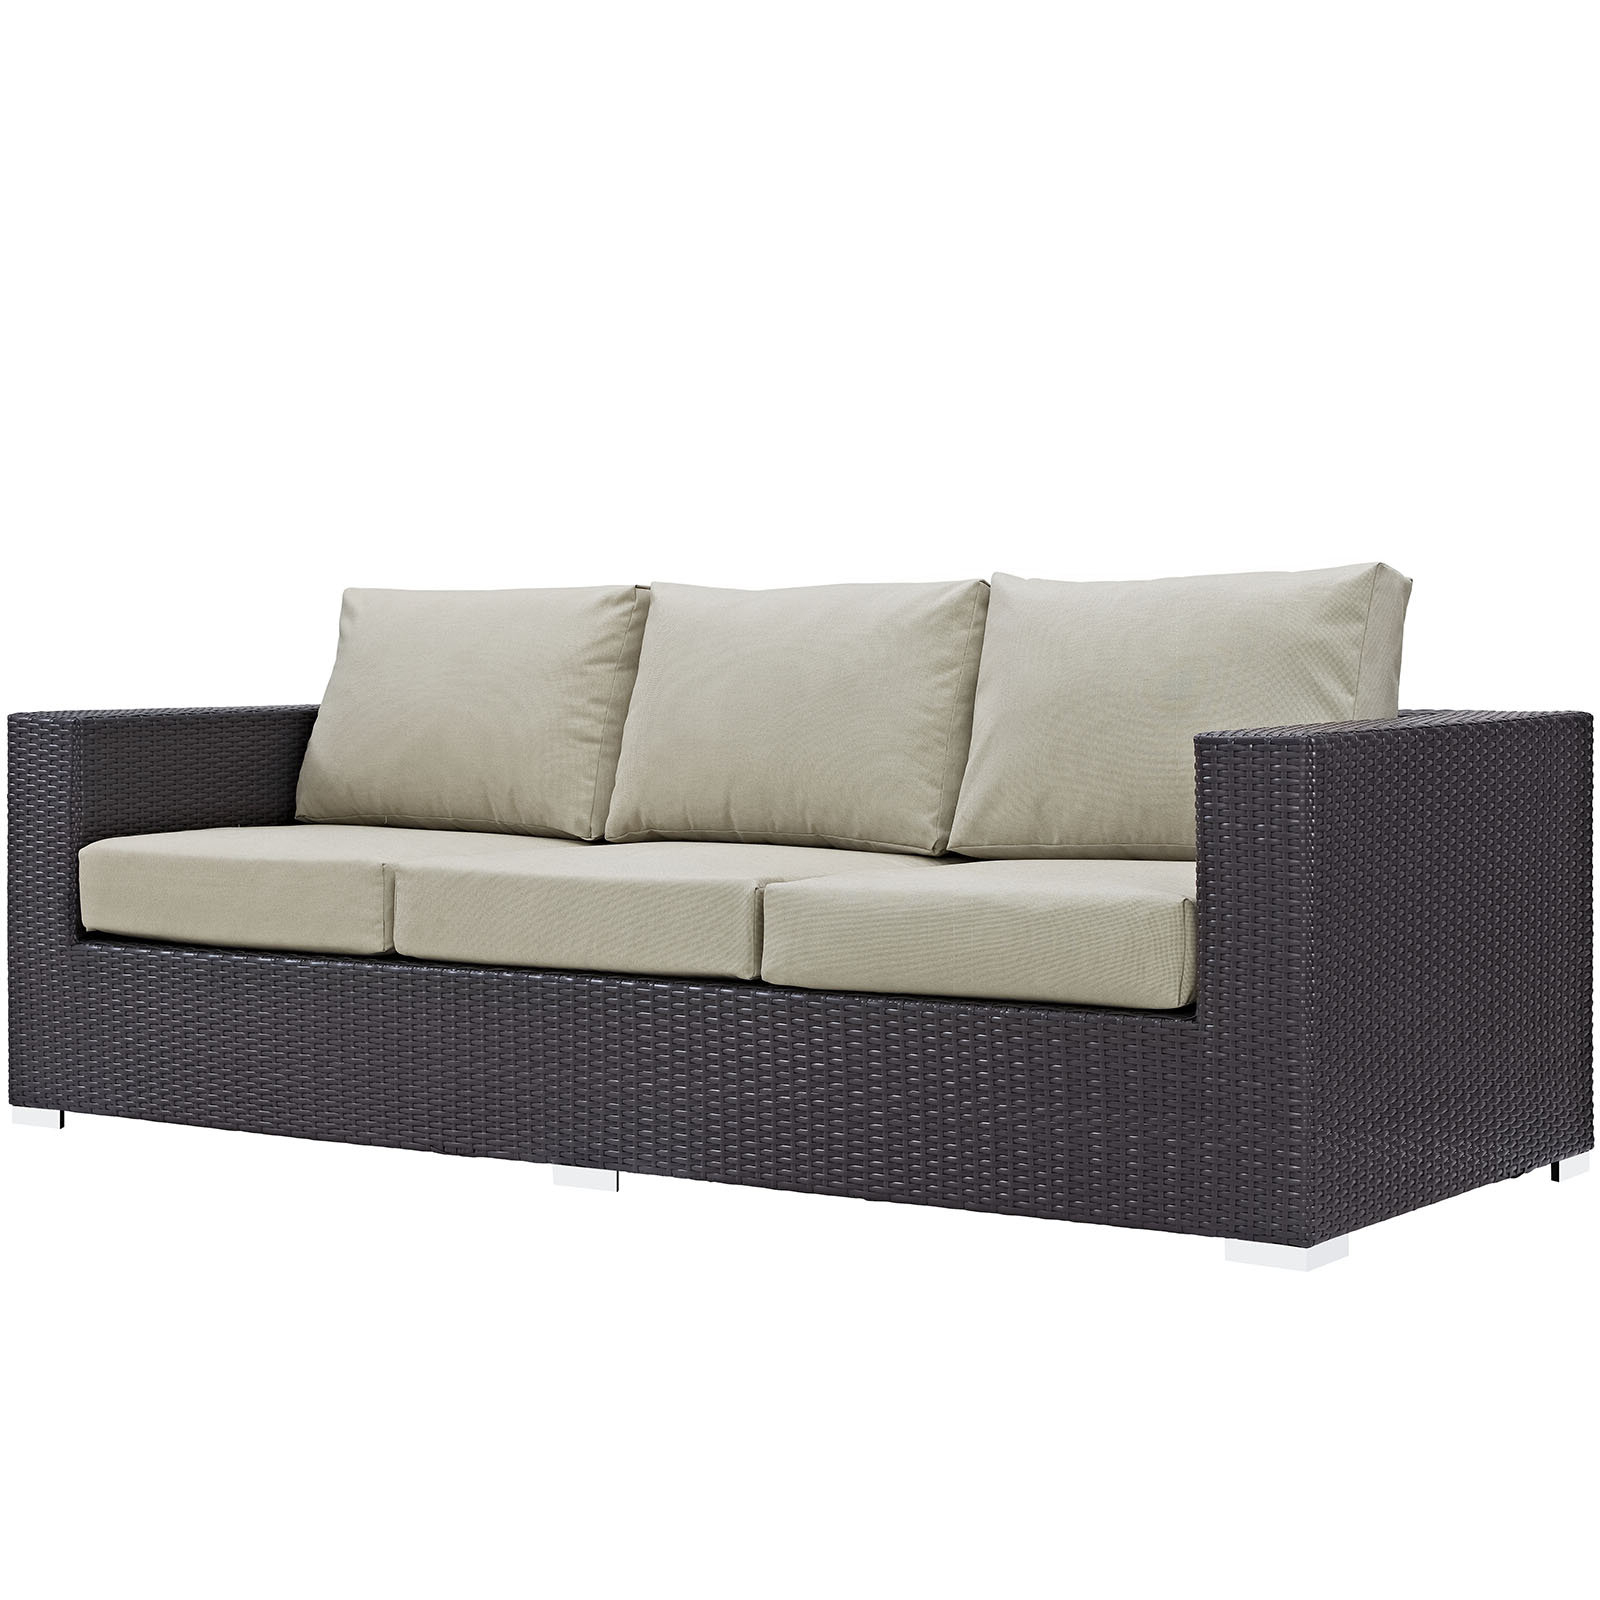 Popular Provencher Patio Loveseats With Cushions Intended For Brentwood Patio Sofa With Cushions (View 10 of 20)